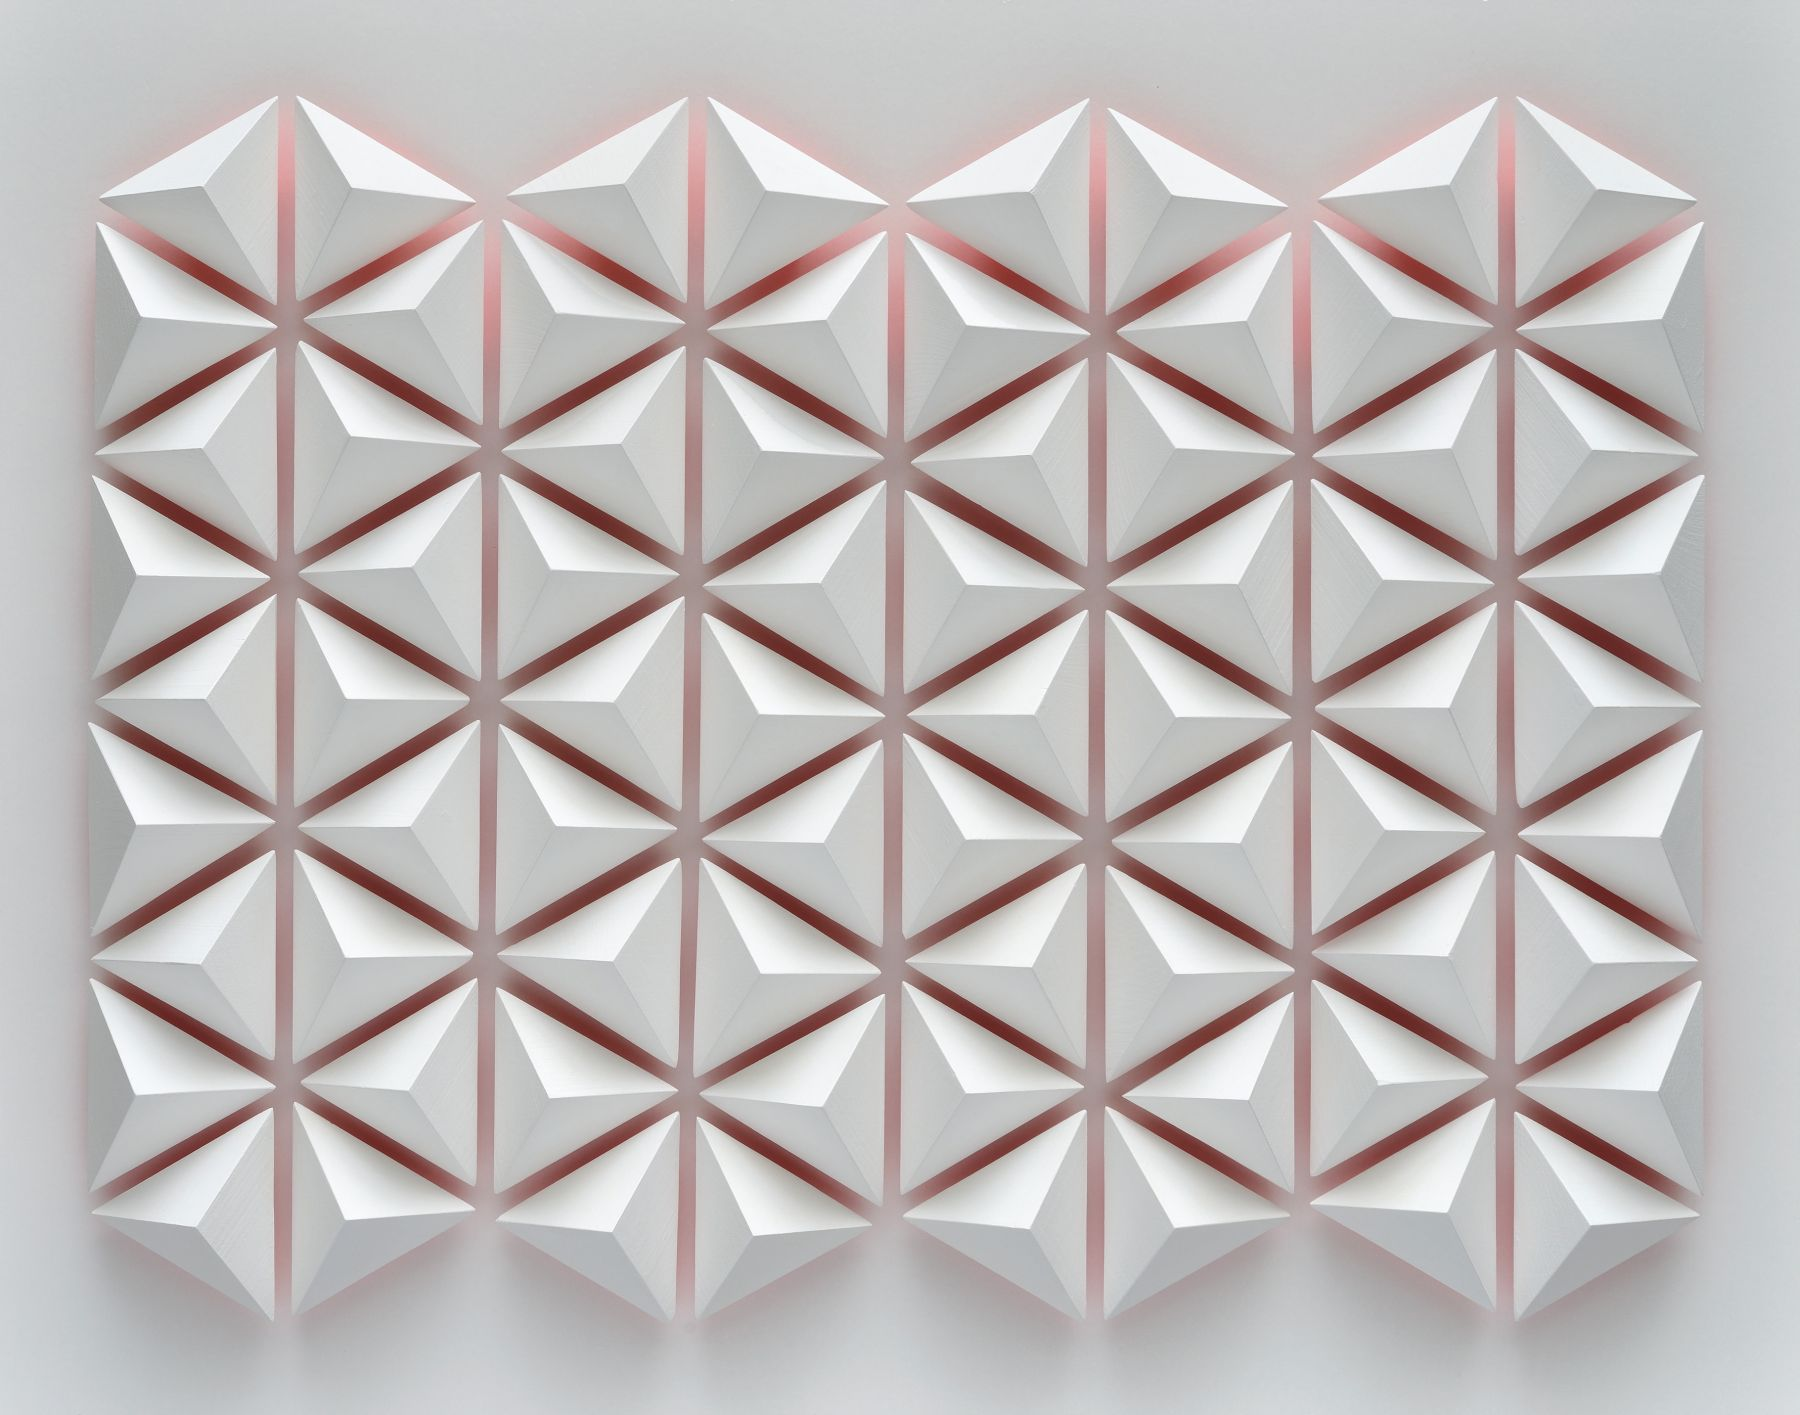 Luis Tomasello, Atmosphère chromoplastique No. 1014, 2012. Acrylic on wood, 26 3/8 x 33 1/2 x 4 in.